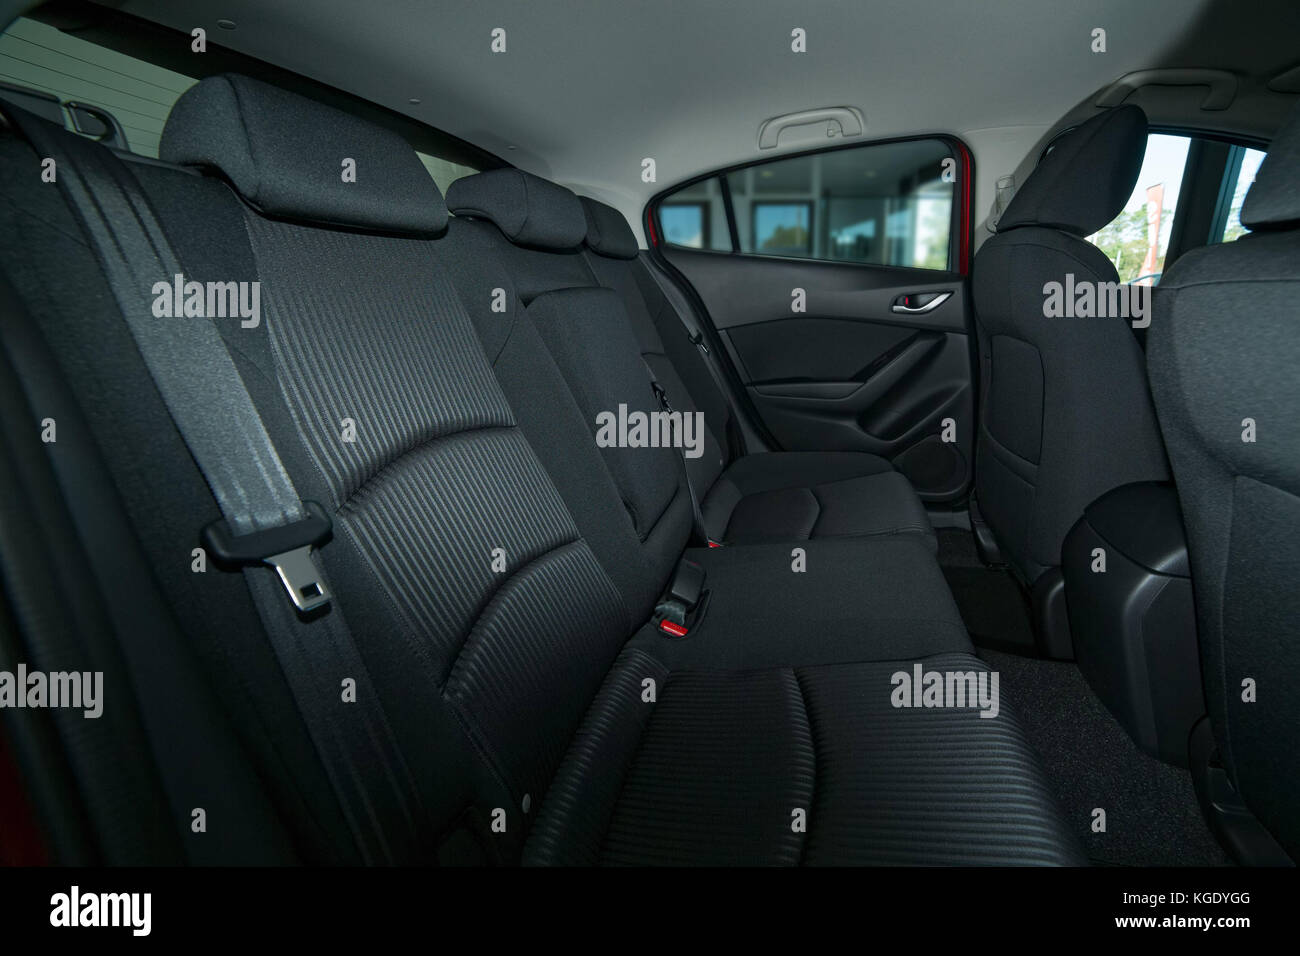 Modern Car Interior With Back Seat With Seat Belts Front Seats And